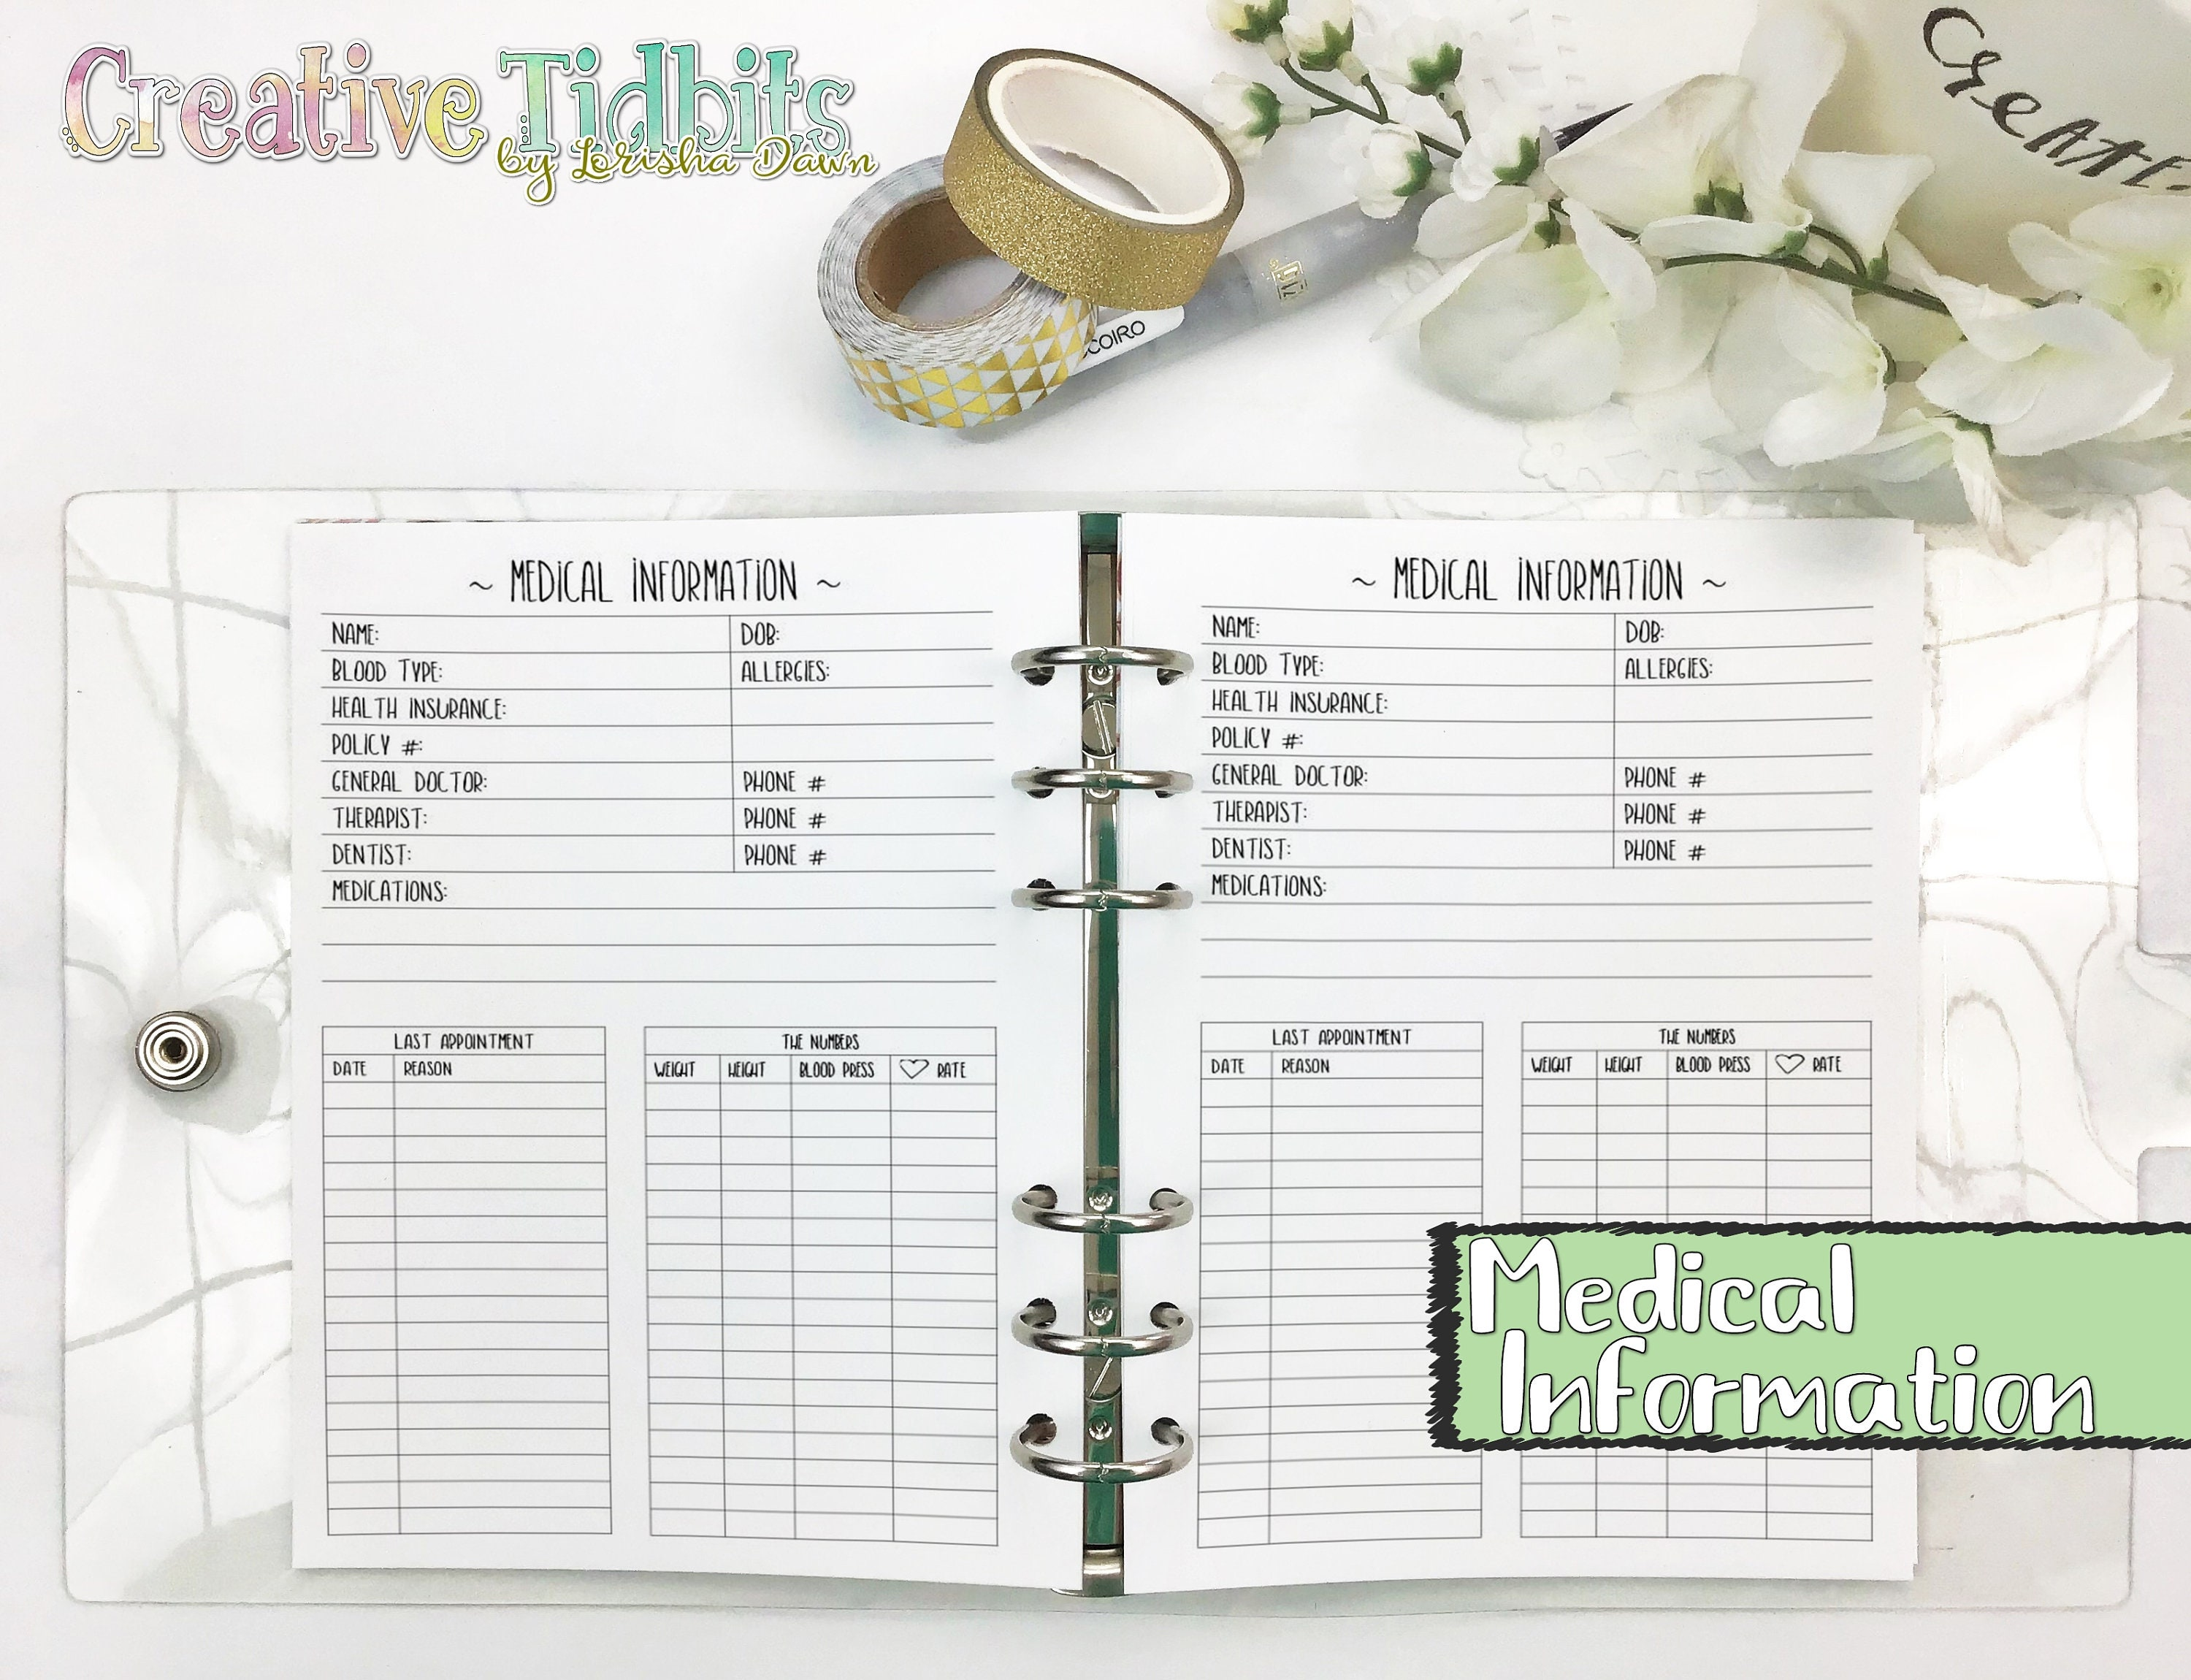 Medical Information - Doctor's Appointment Tracker - A6 Rings Insert -  Personal Wide Rings Insert - Pocket Rings Insert - Medical Tracker